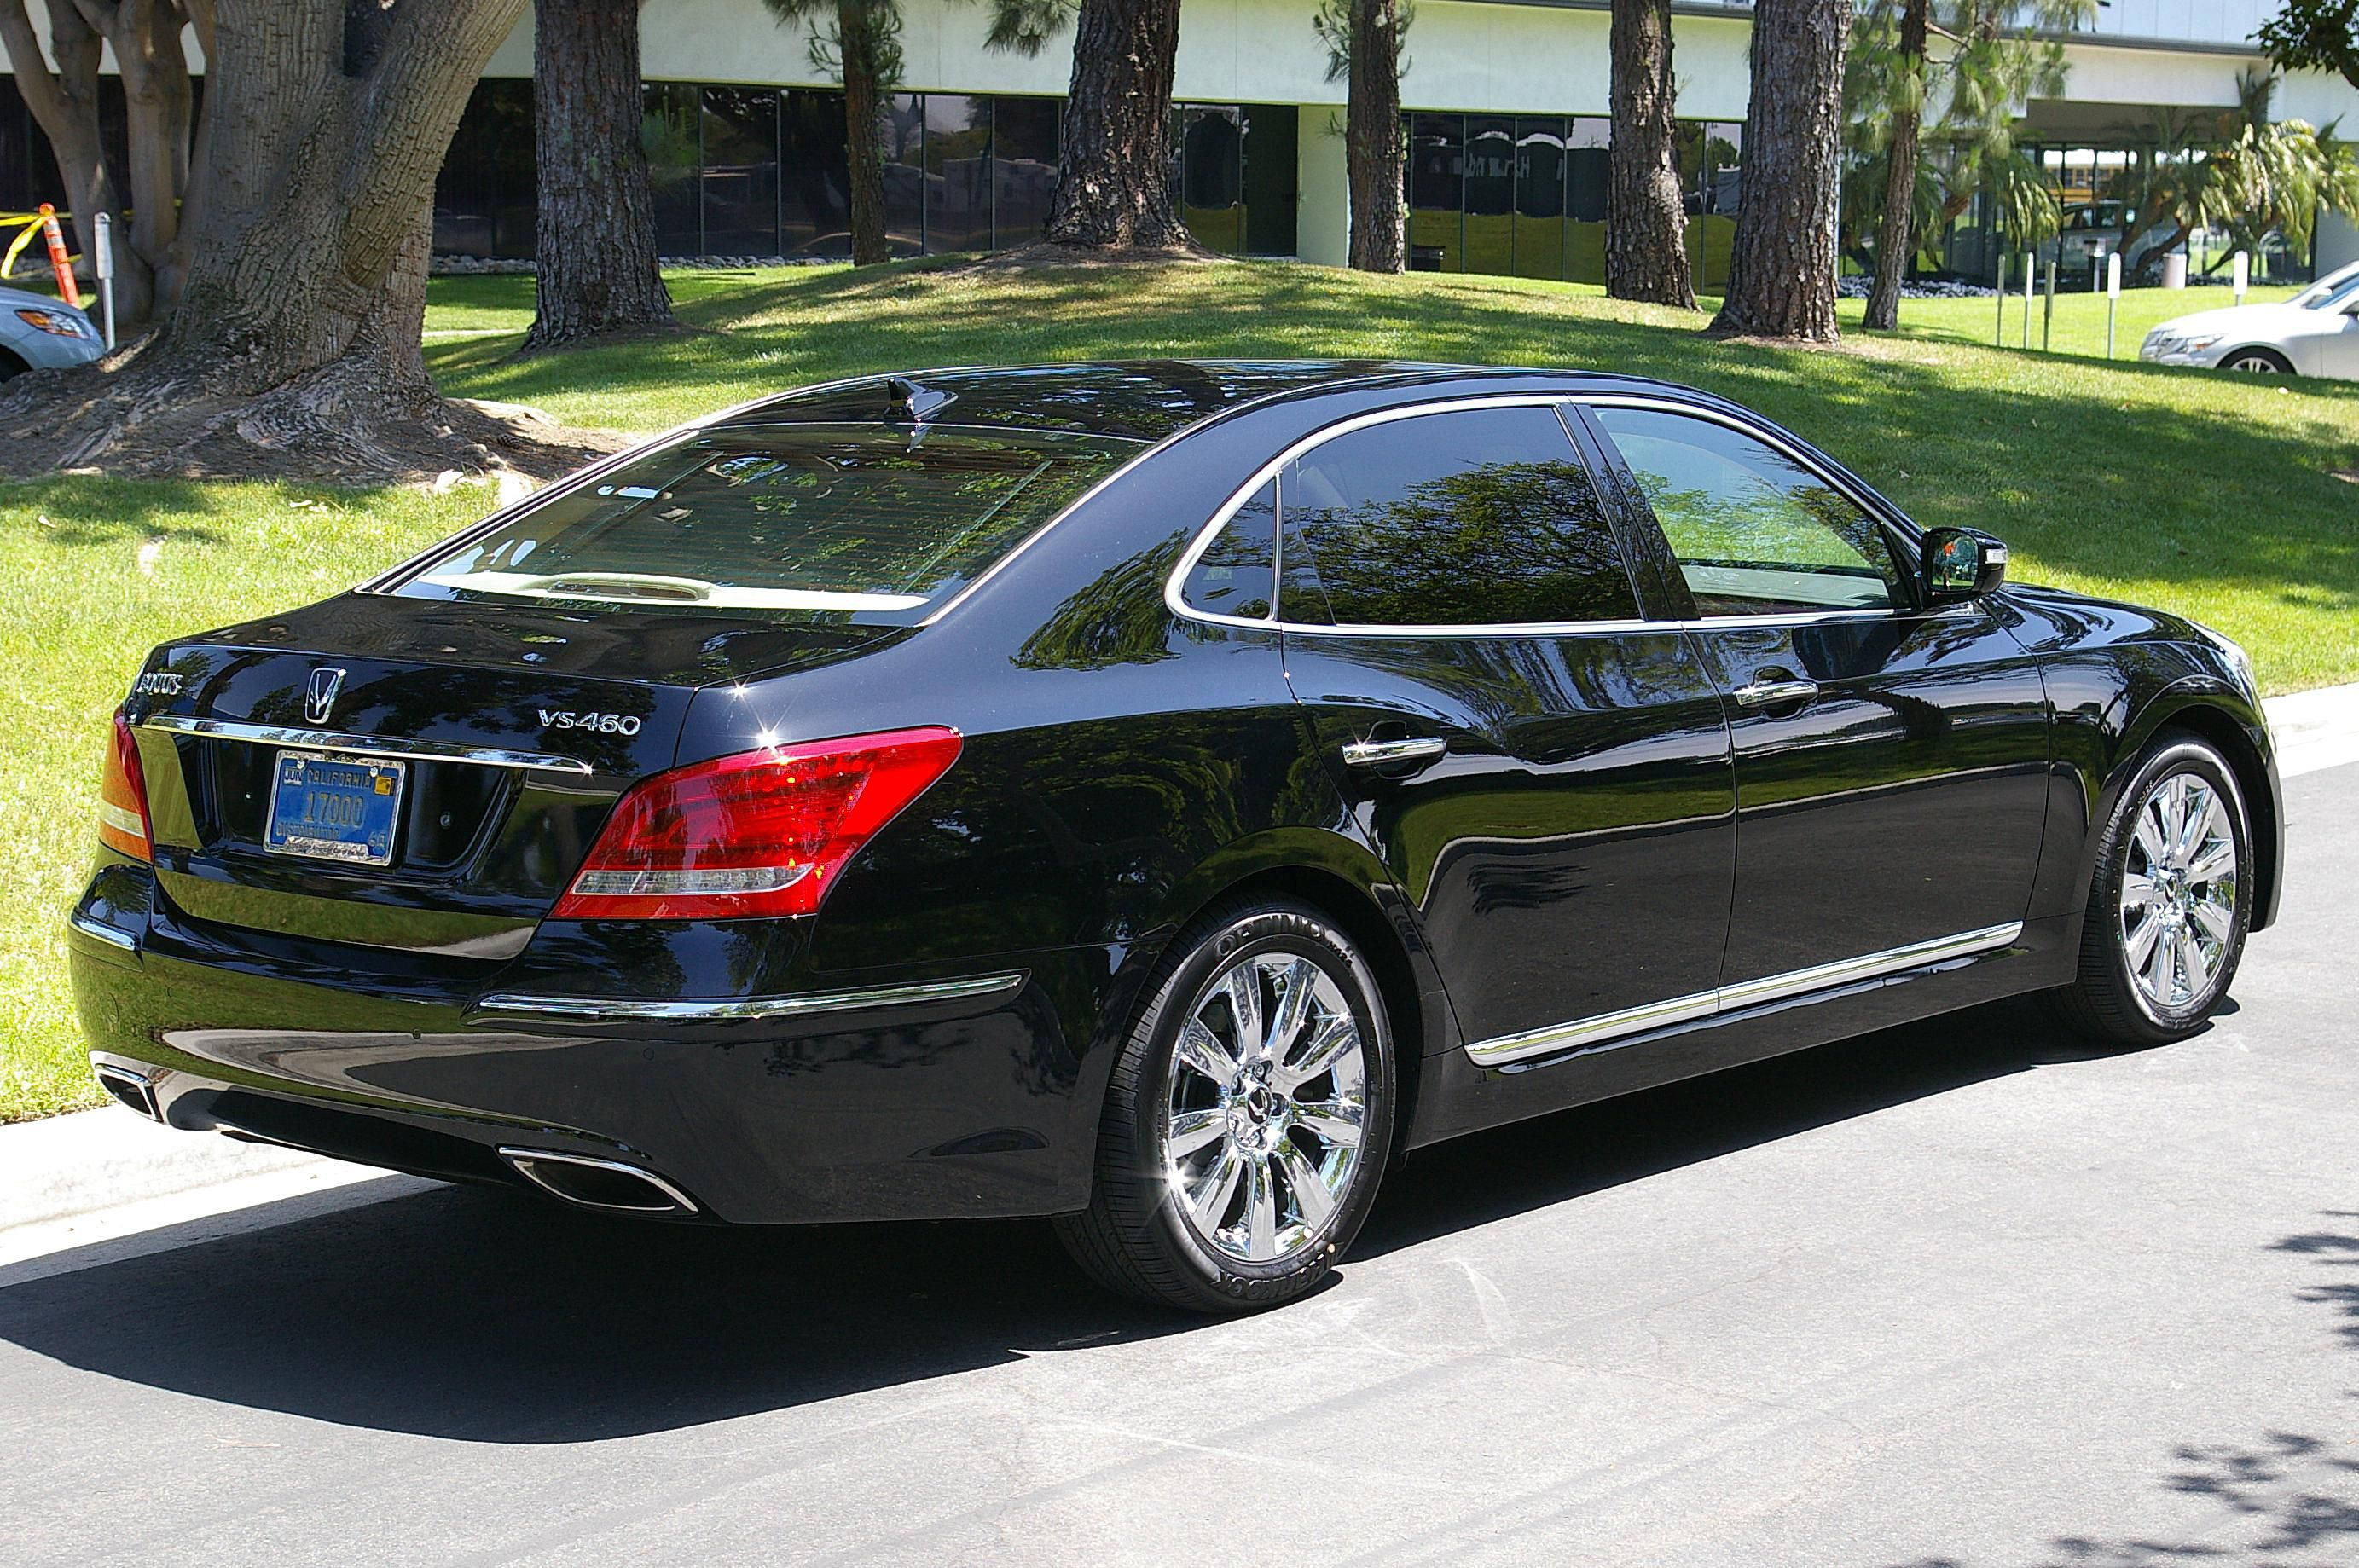 2009 Hyundai Equus From The Rear